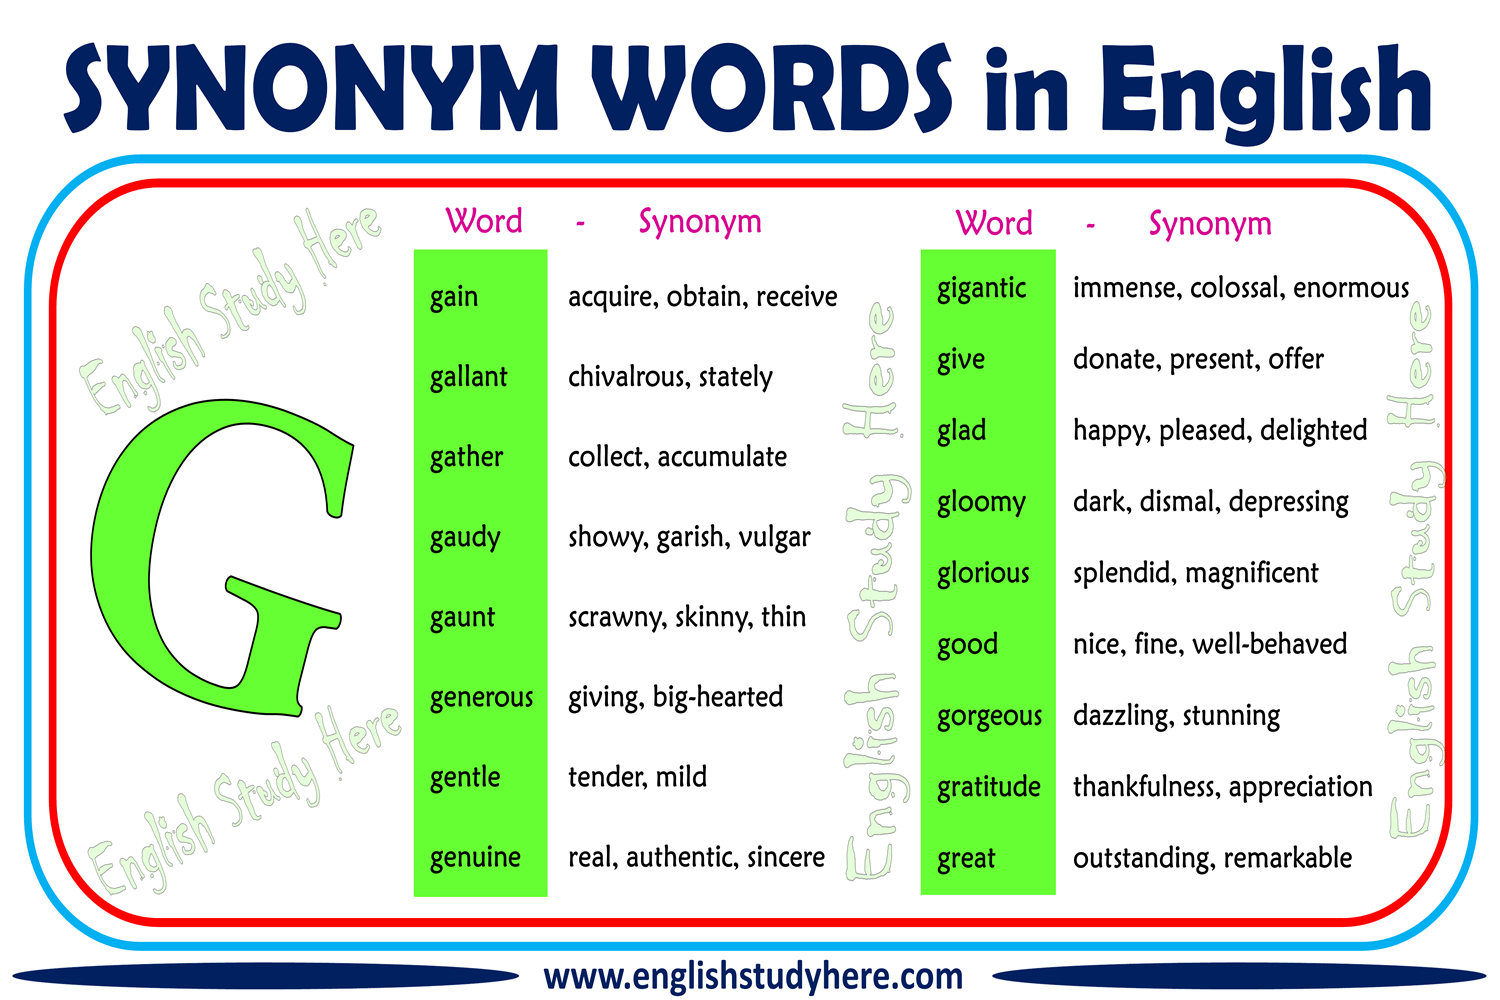 synonym means a word which has the same or nearly the same meaning as another word in the same language to reach detailed synonym words list with g